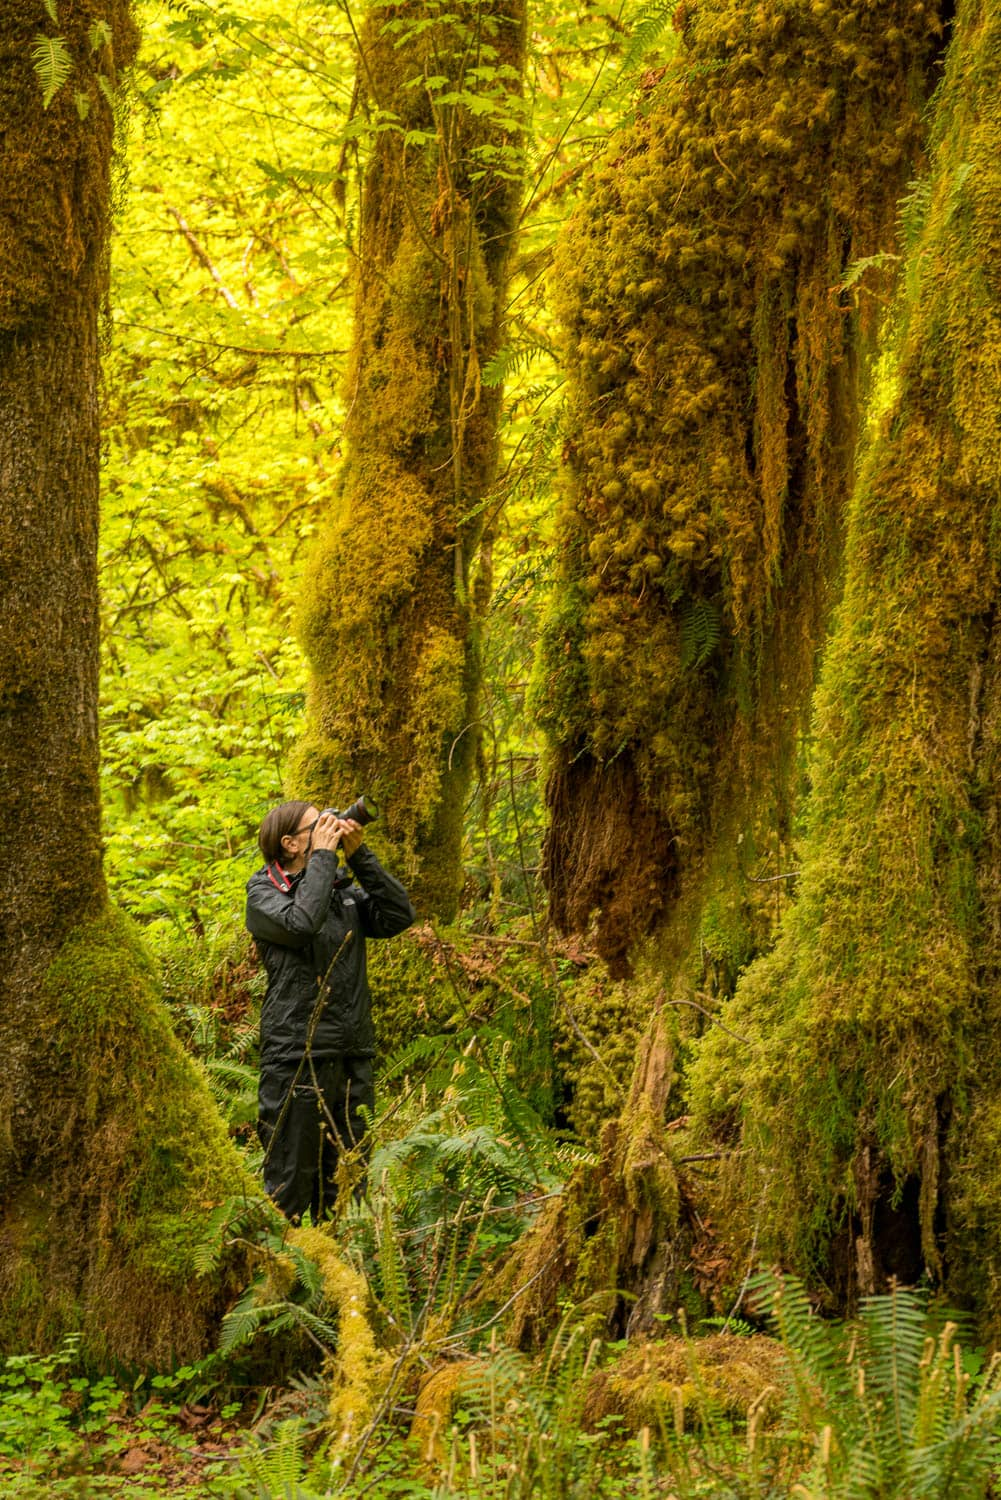 Olympic National Park in Washington is a great spot for a photography workshop